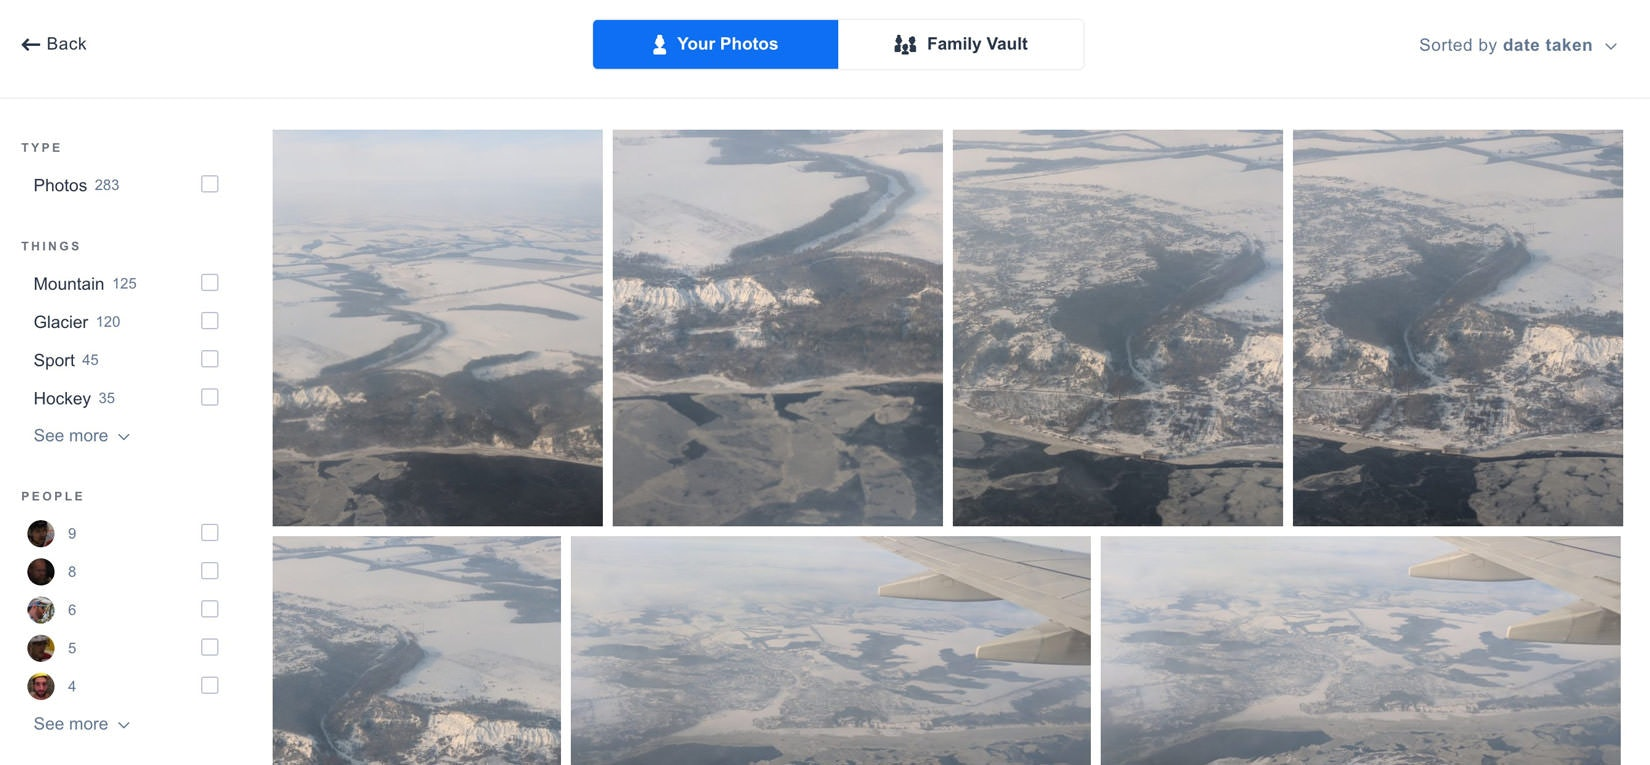 Amazon Prime Photos snow photo search